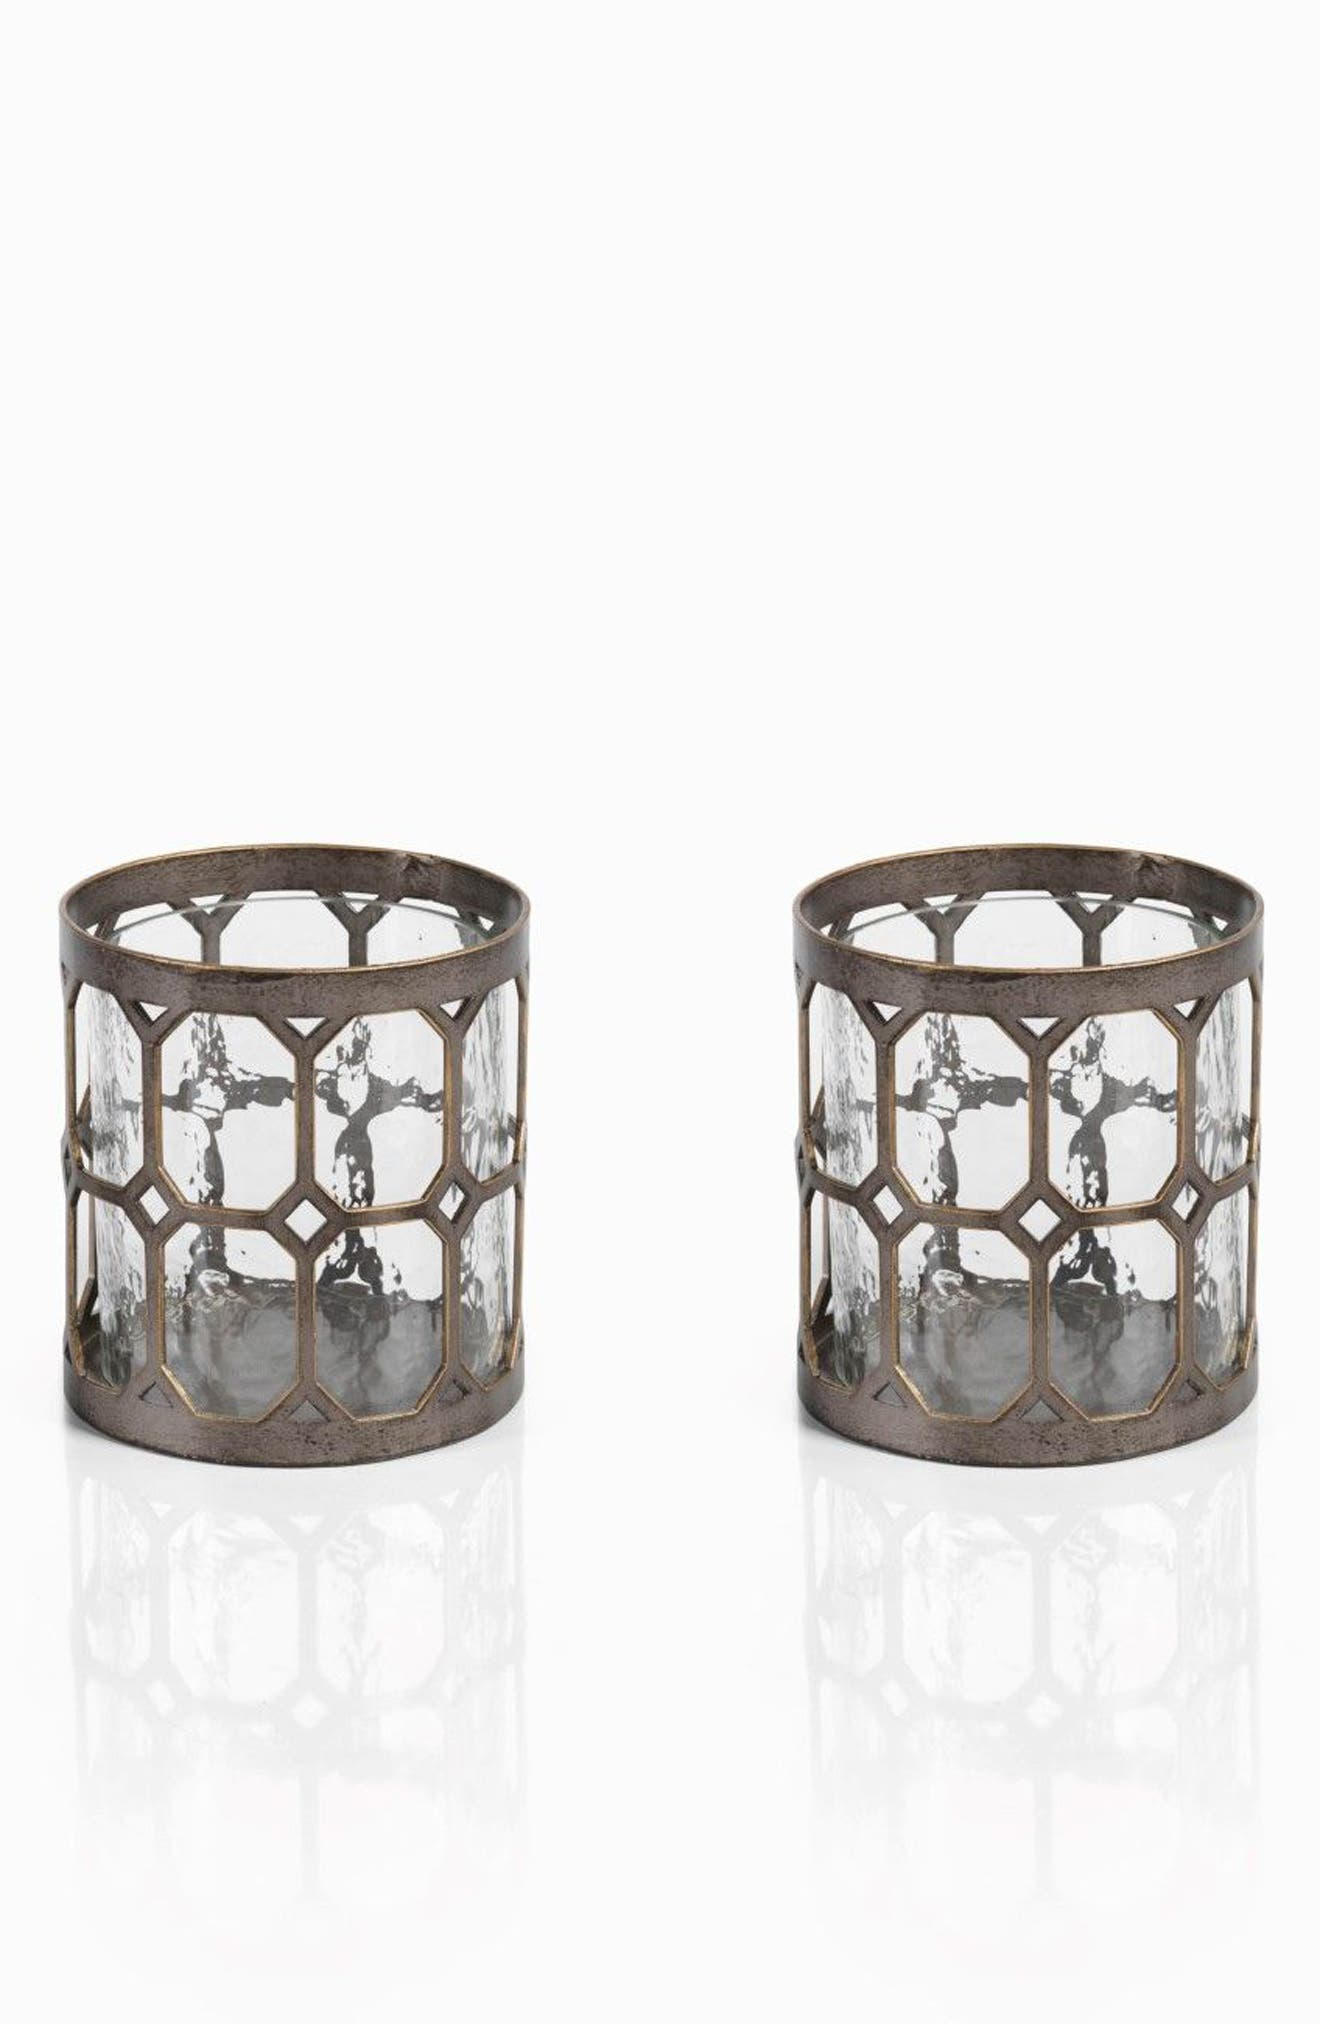 Loire Set of 2 Hurricane Candle Holders,                         Main,                         color, Metallic/ Silver/ Grey